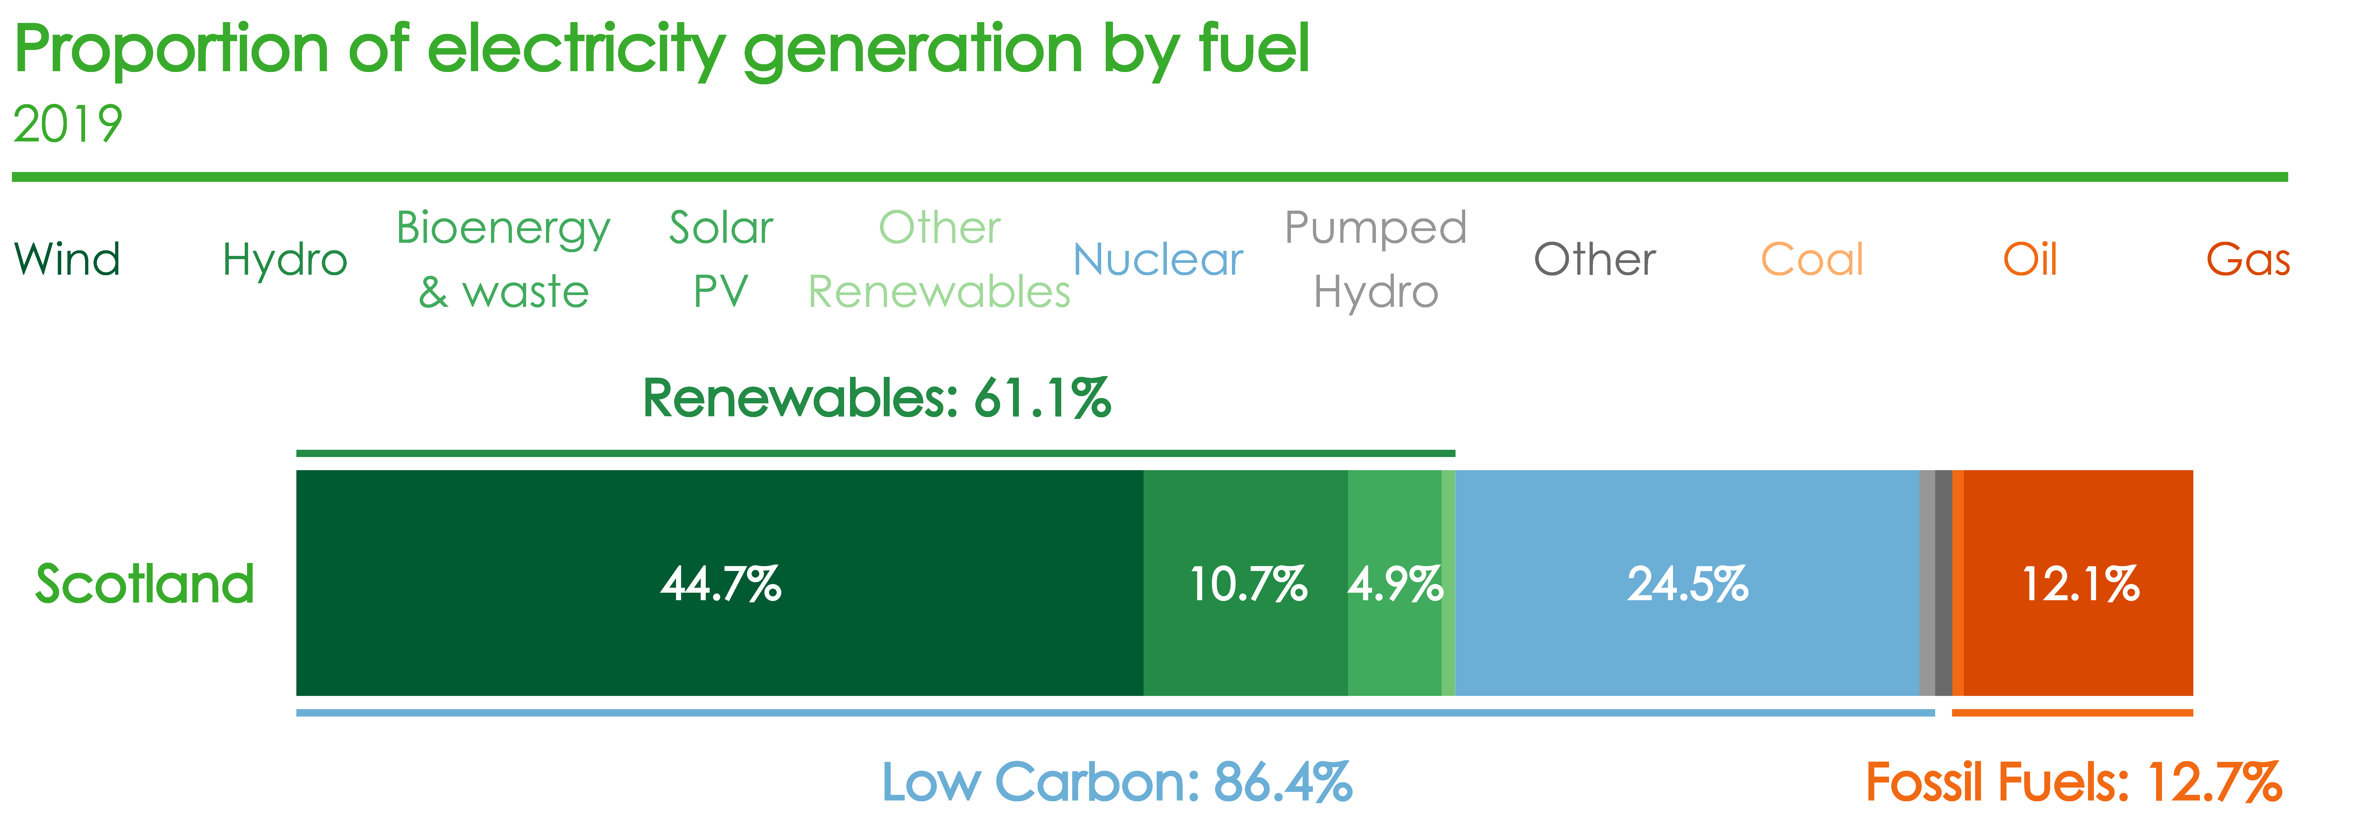 In 2019 the majority (86%) of electricity was generated by low carbon sources (including nuclear), with the remainder coming from fossil fuels (13%), predominantly gas.